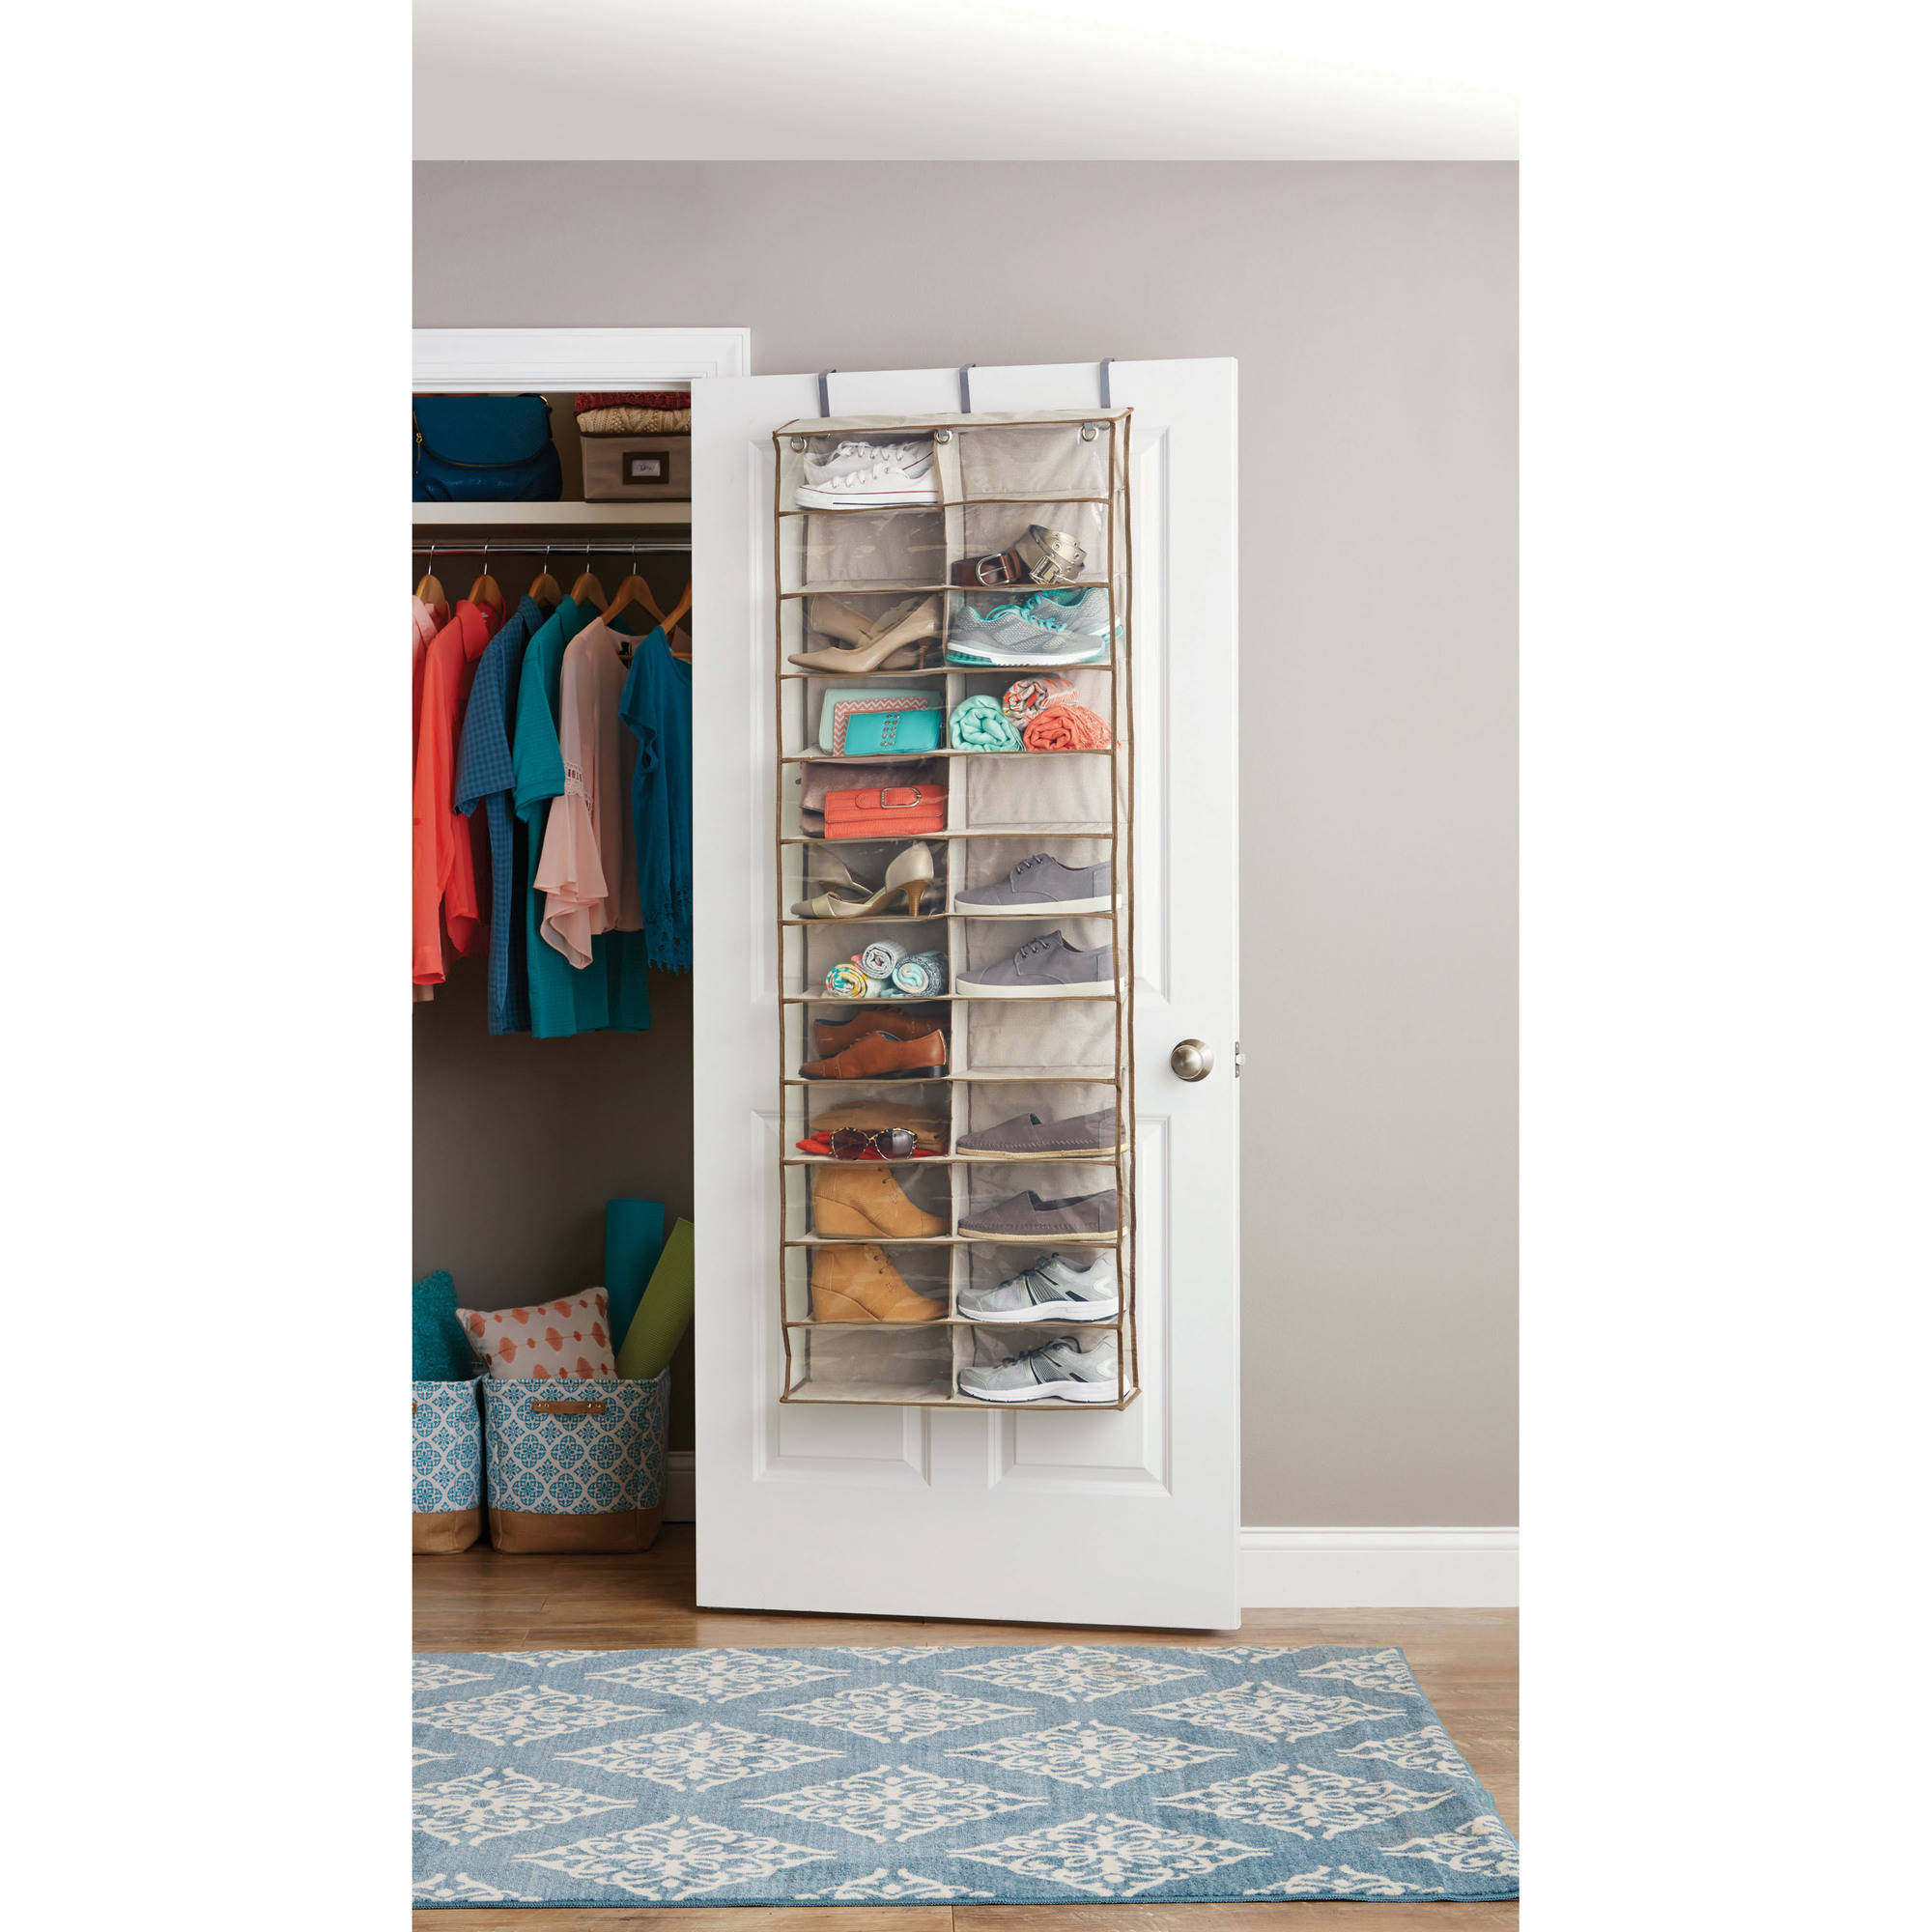 Better Homes and Gardens Over the Door Shoe Organizer